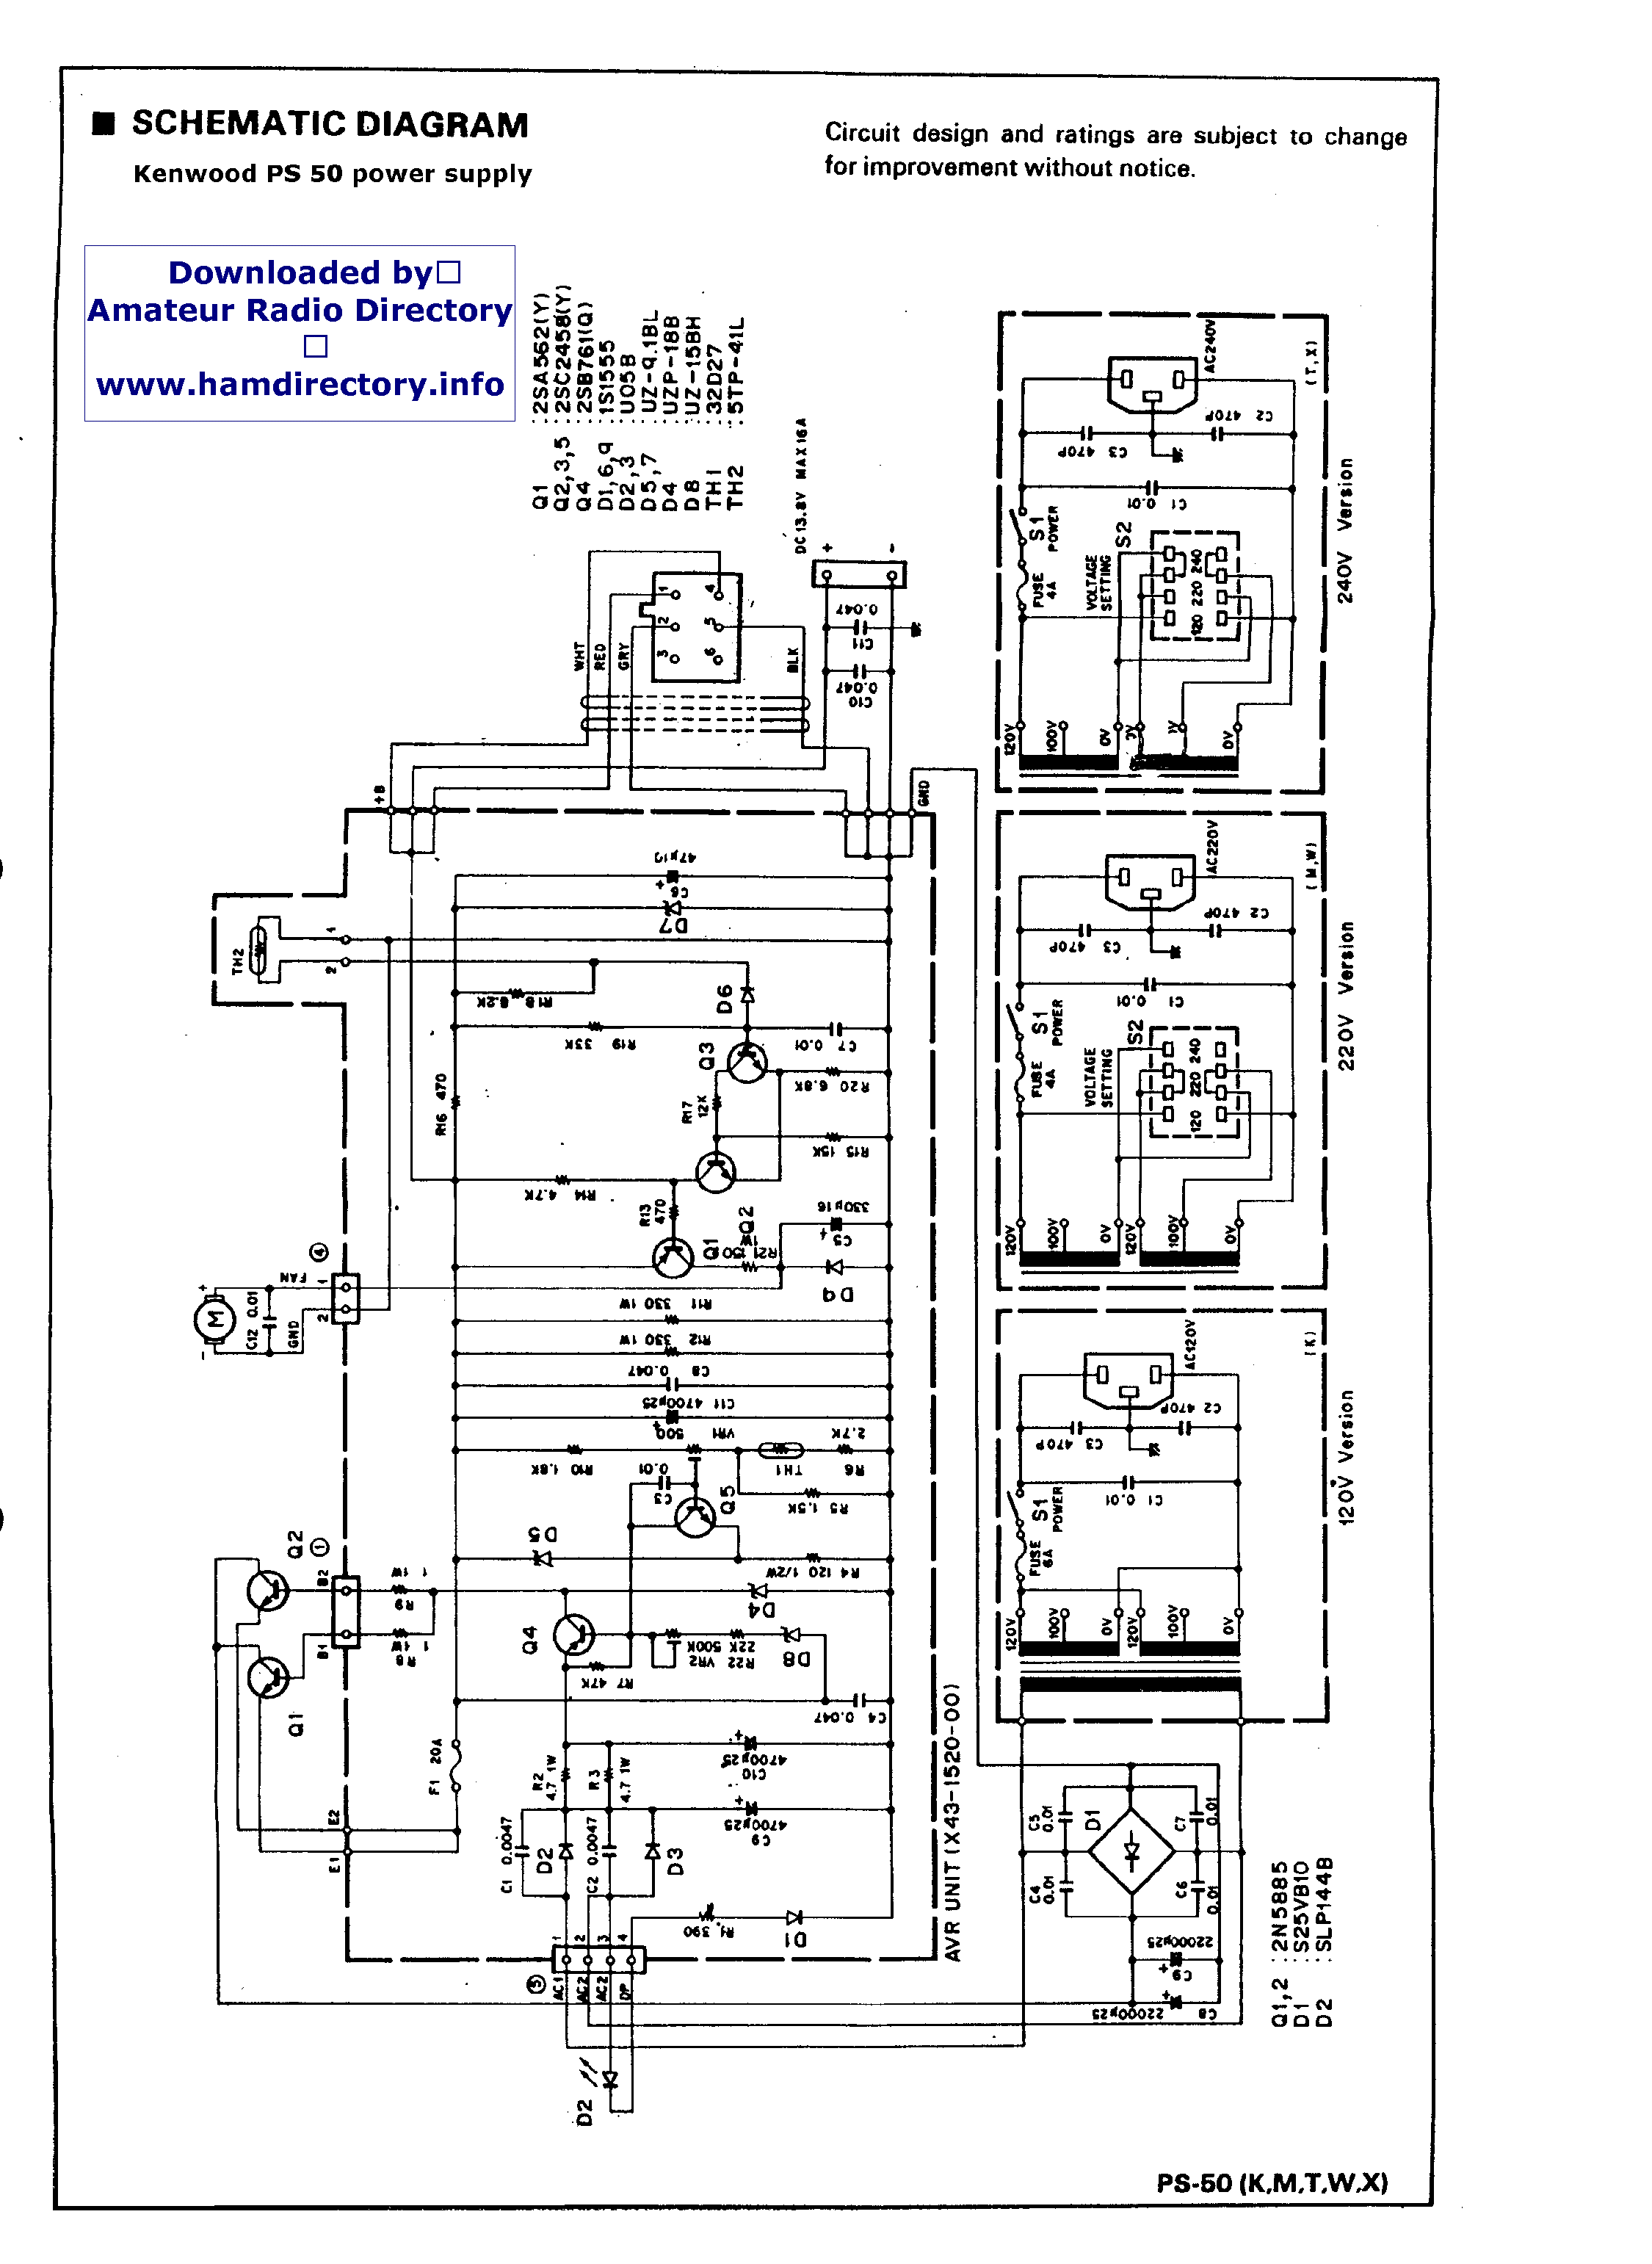 KENWOOD PS-510 SM Service Manual download, schematics